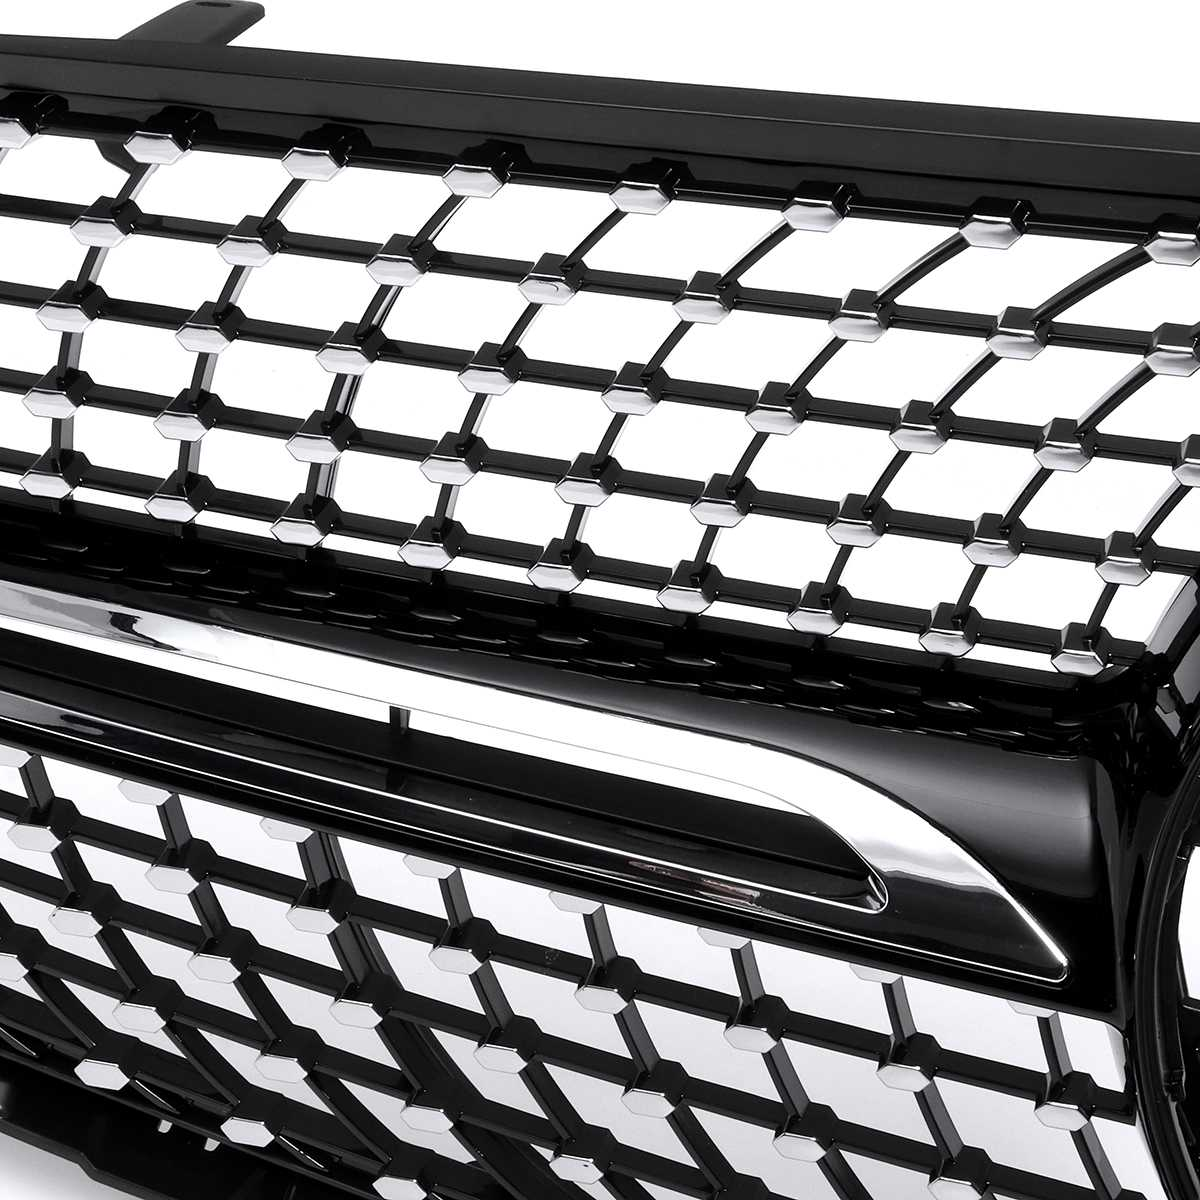 Diamond Style W253 Car Front Bumper Mesh Grille Grill For Mercedes For Benz GLC Class W253 GLC300 GLC350 2015-2019